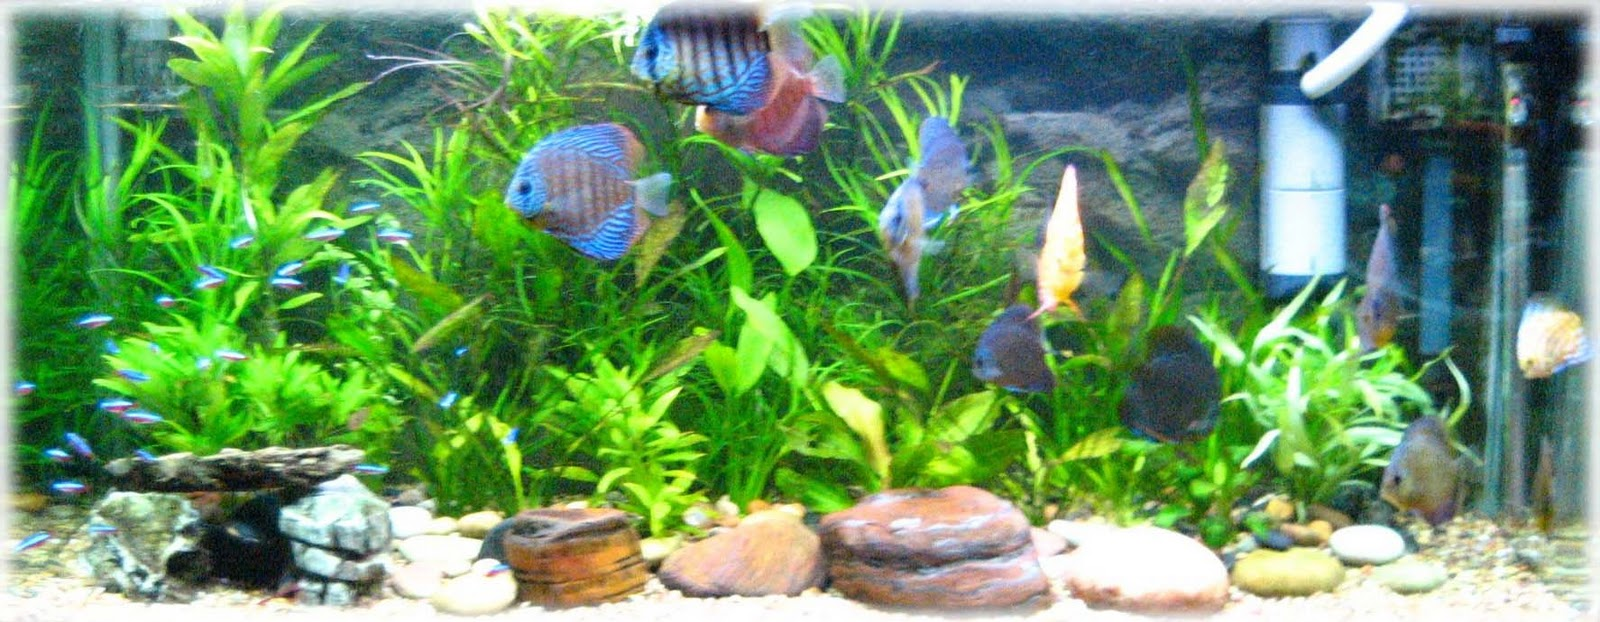 Discus Fish Tankmates Other Types Of Tropical Fish Can